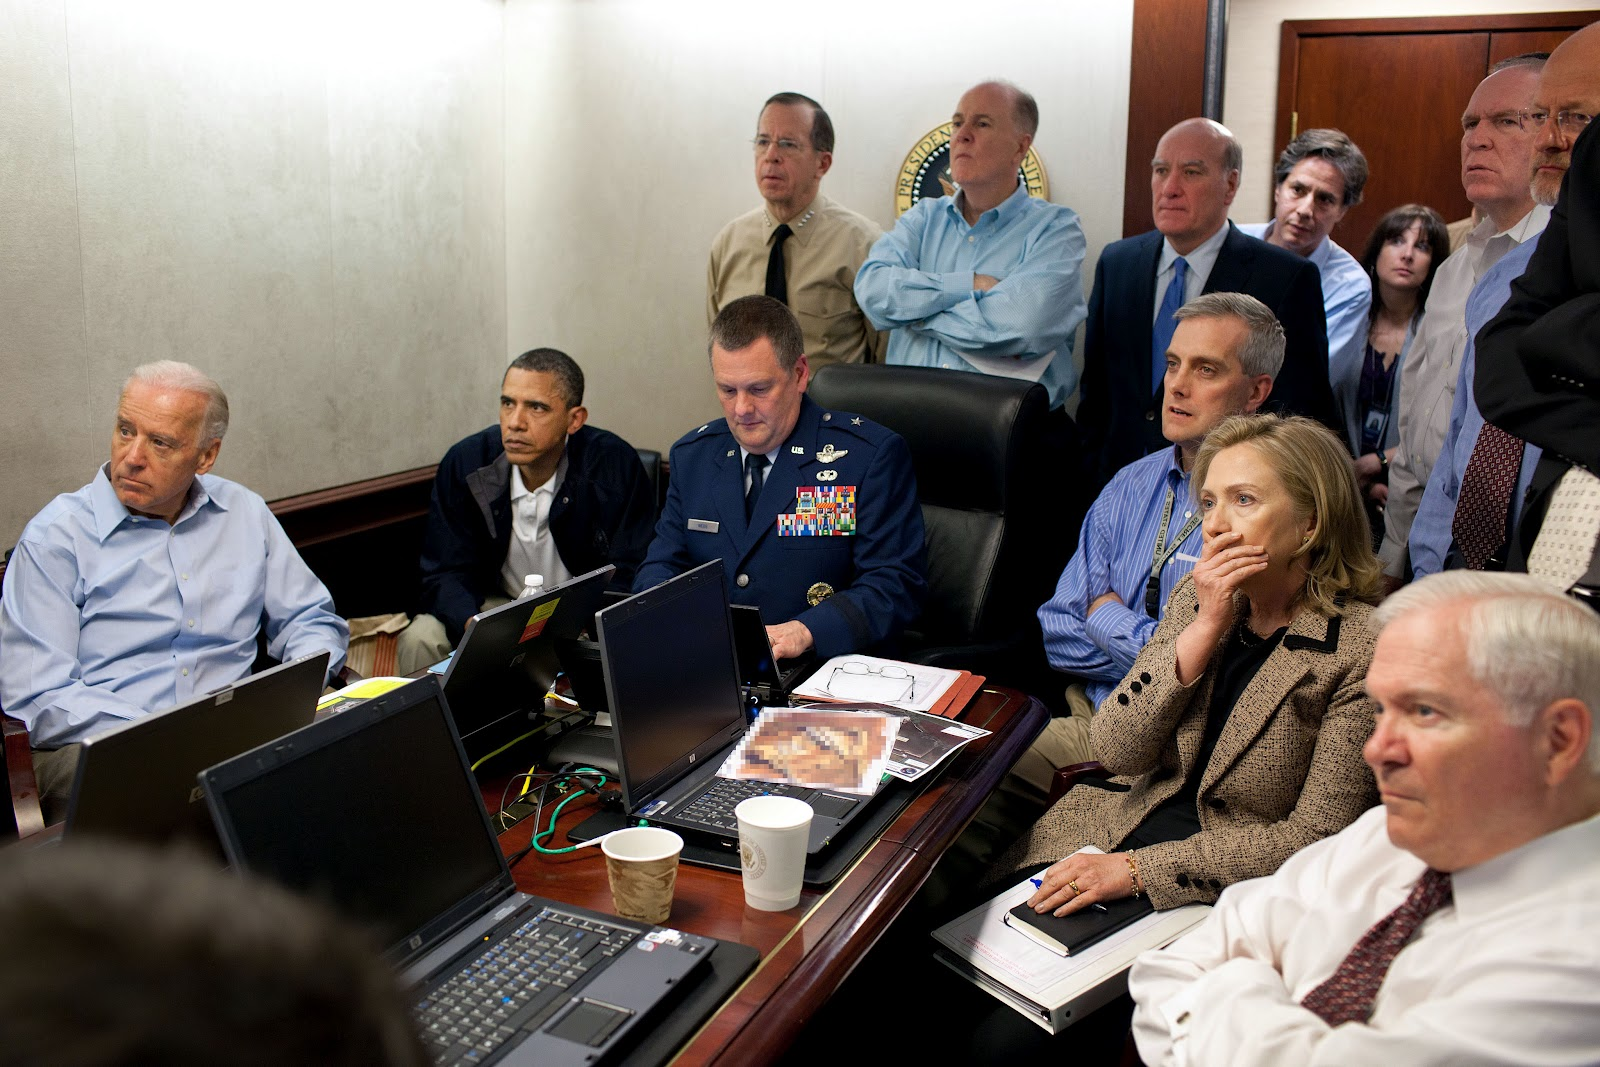 http://1.bp.blogspot.com/-HeNrHViH6cM/T578kvKuskI/AAAAAAAADIg/GZt5_PhVpPg/s1600/Obama_and_Biden_await_updates_on_bin_Laden.jpg